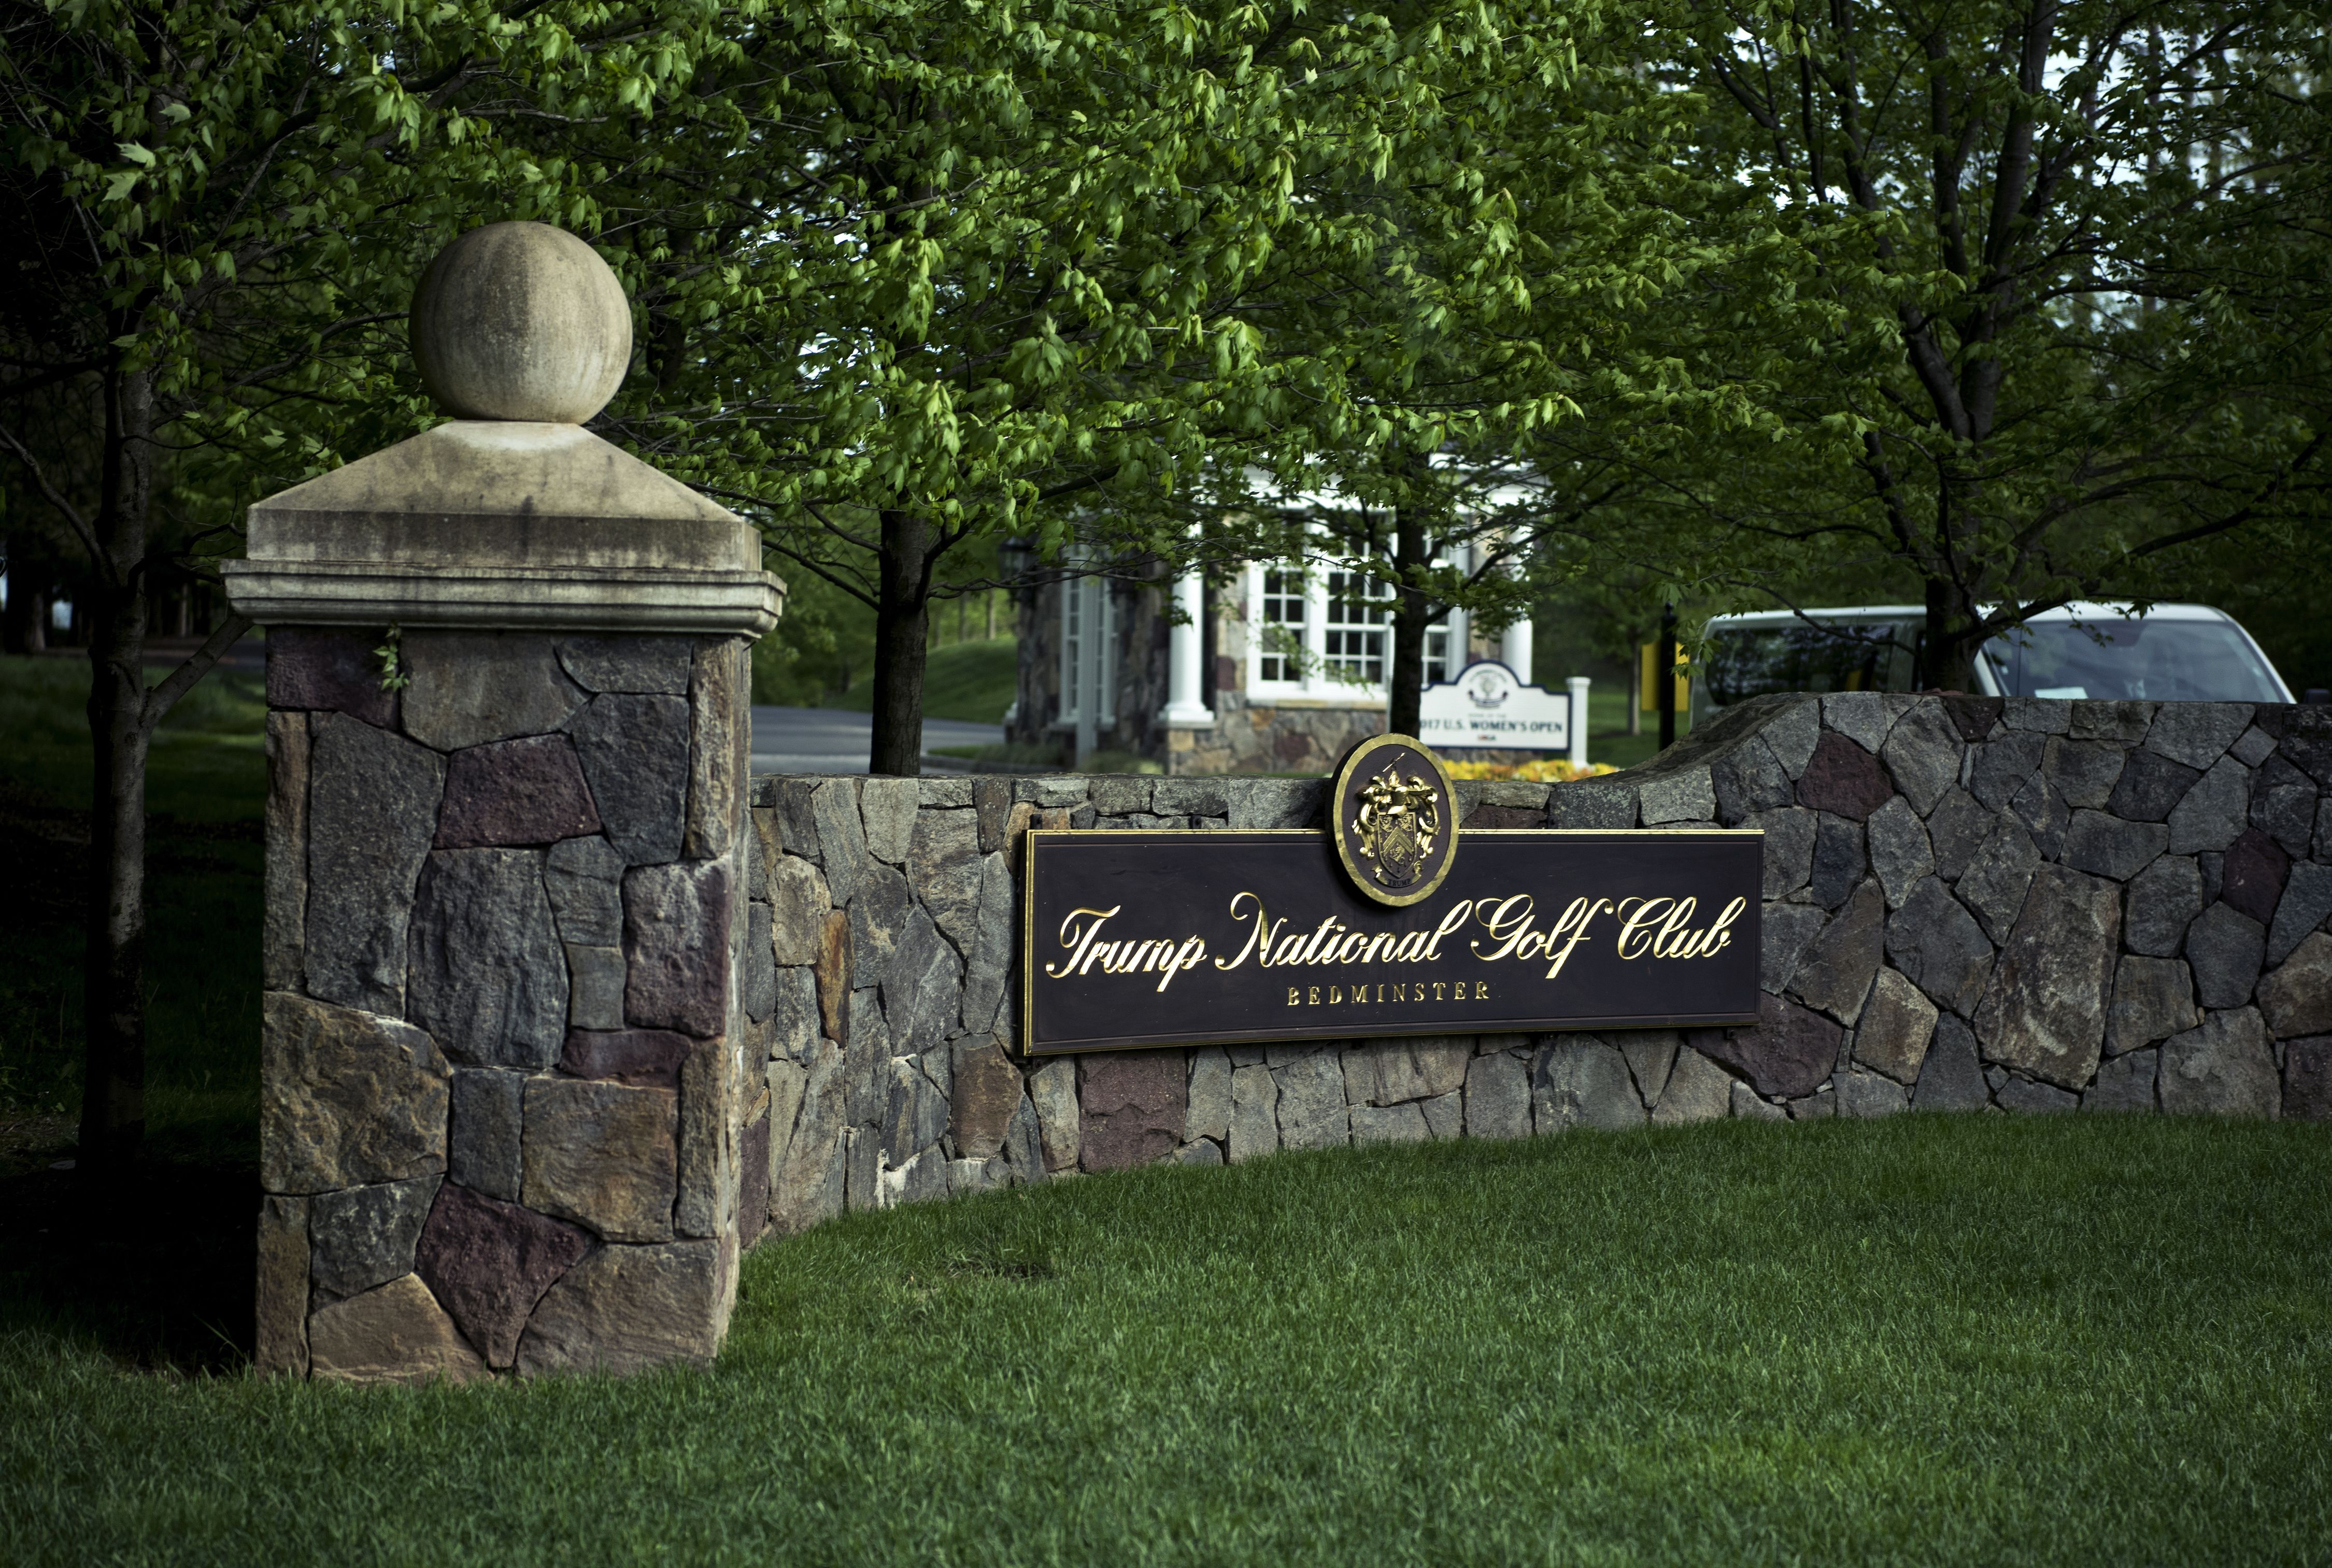 The Trump National Golf Club in Bedminster, N.J.